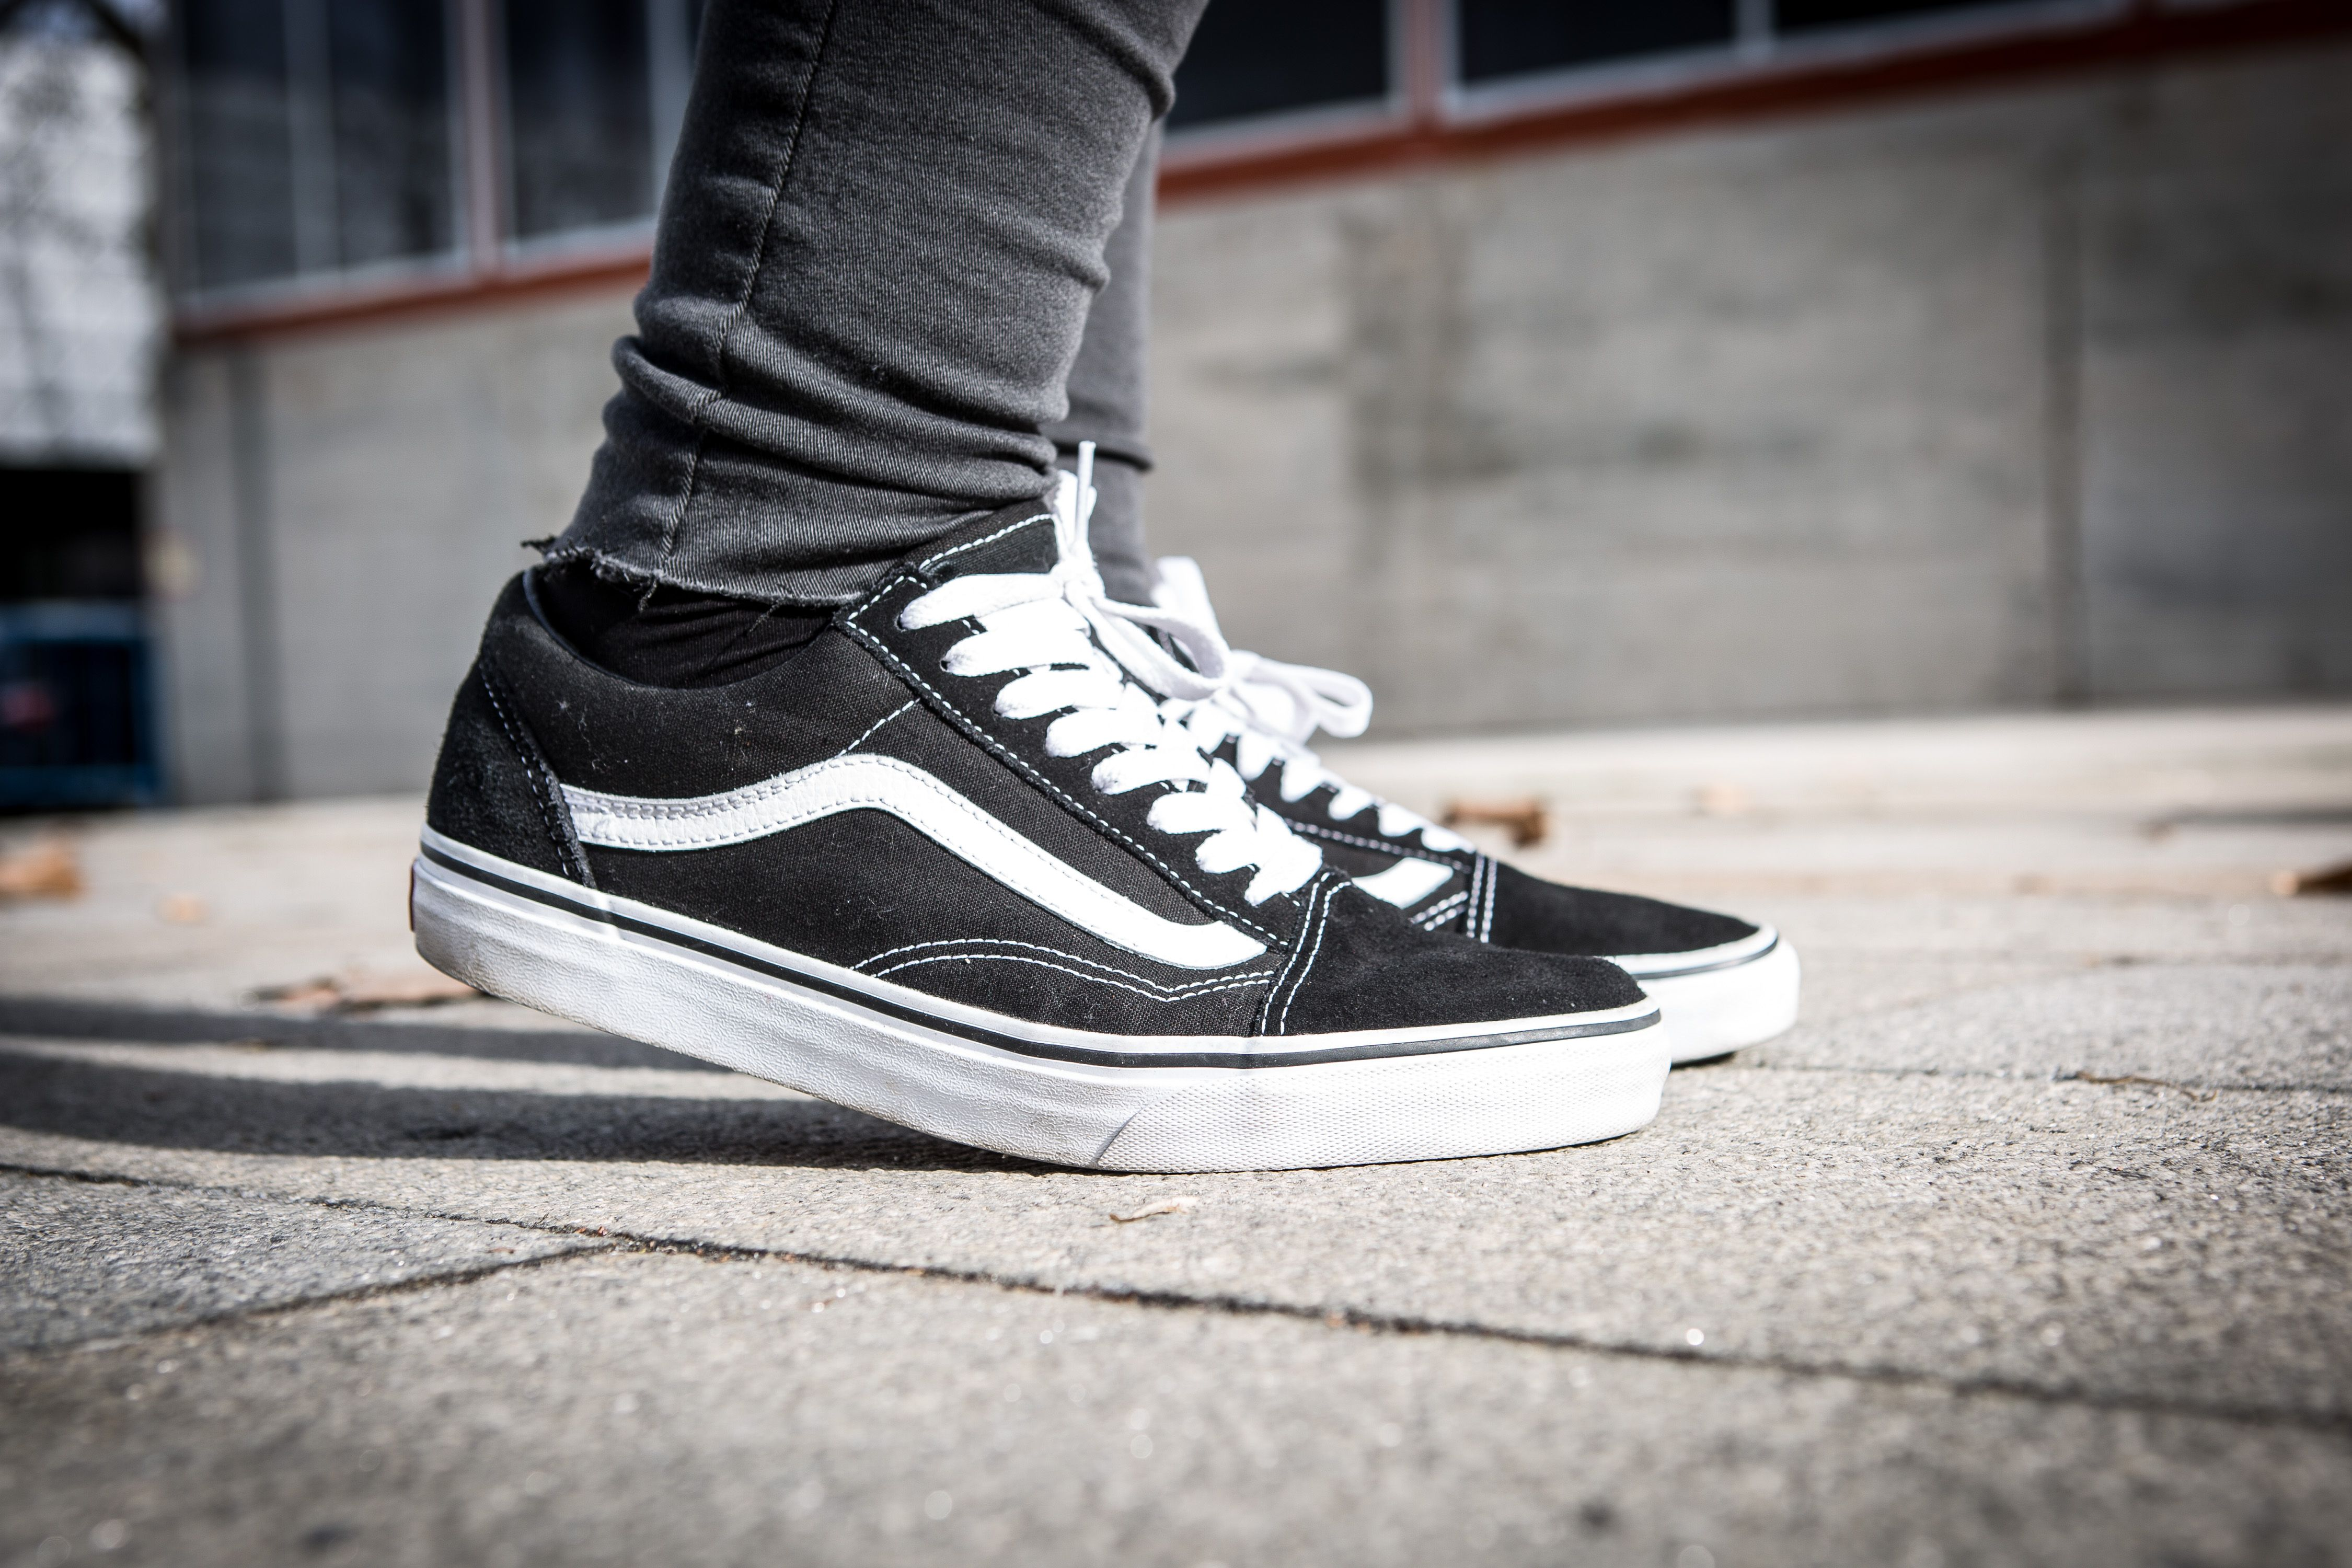 conciencia Sillón Naufragio  Vans is suing Primark for selling 'copies' of its iconic skateboard trainers